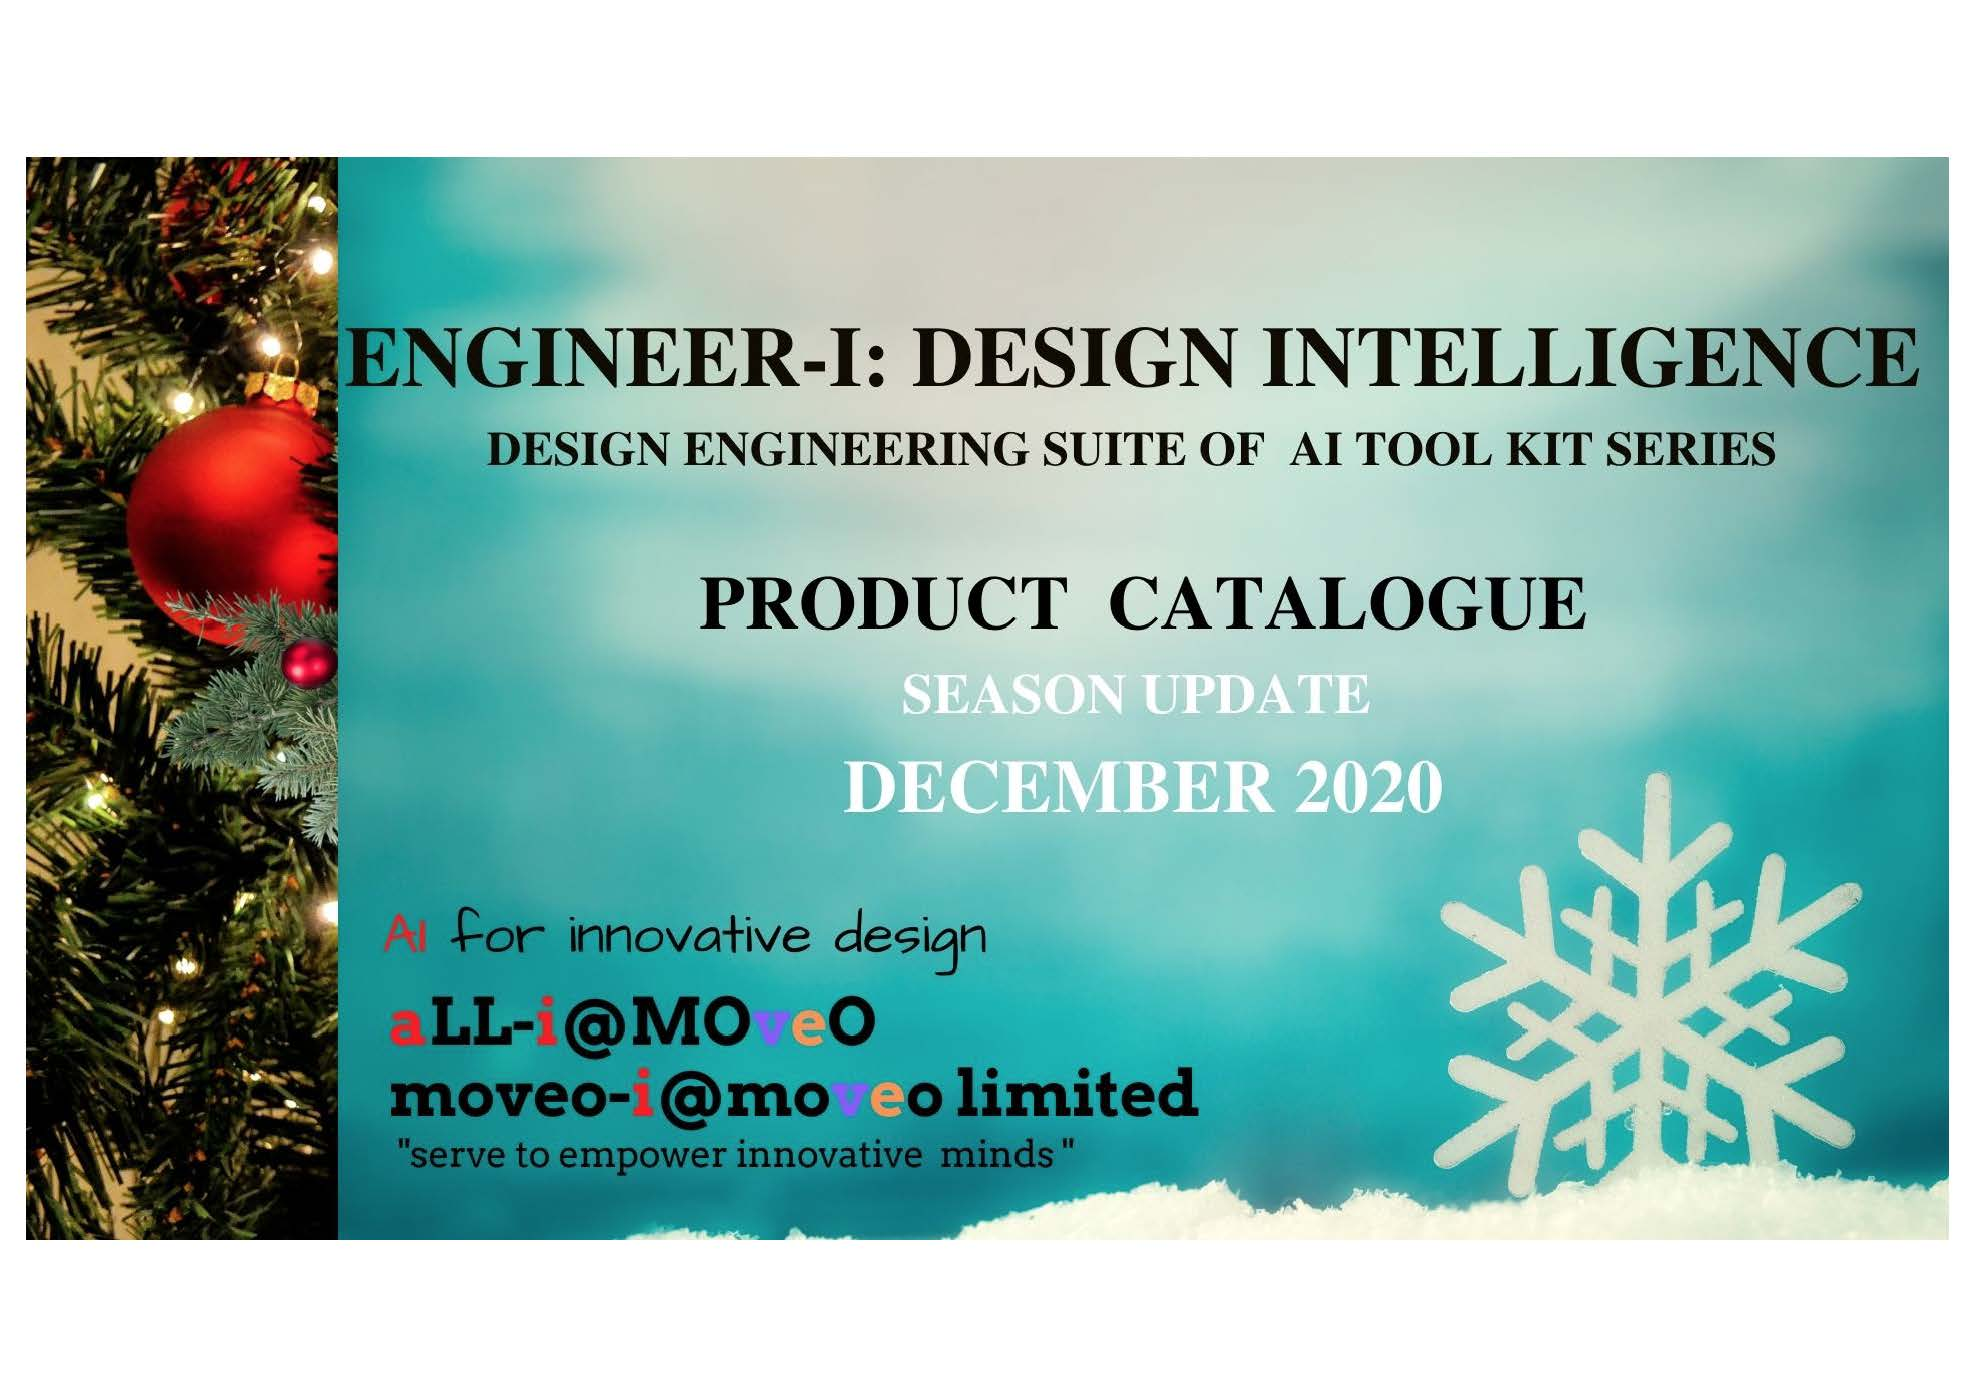 engineer-i suite product catalog season